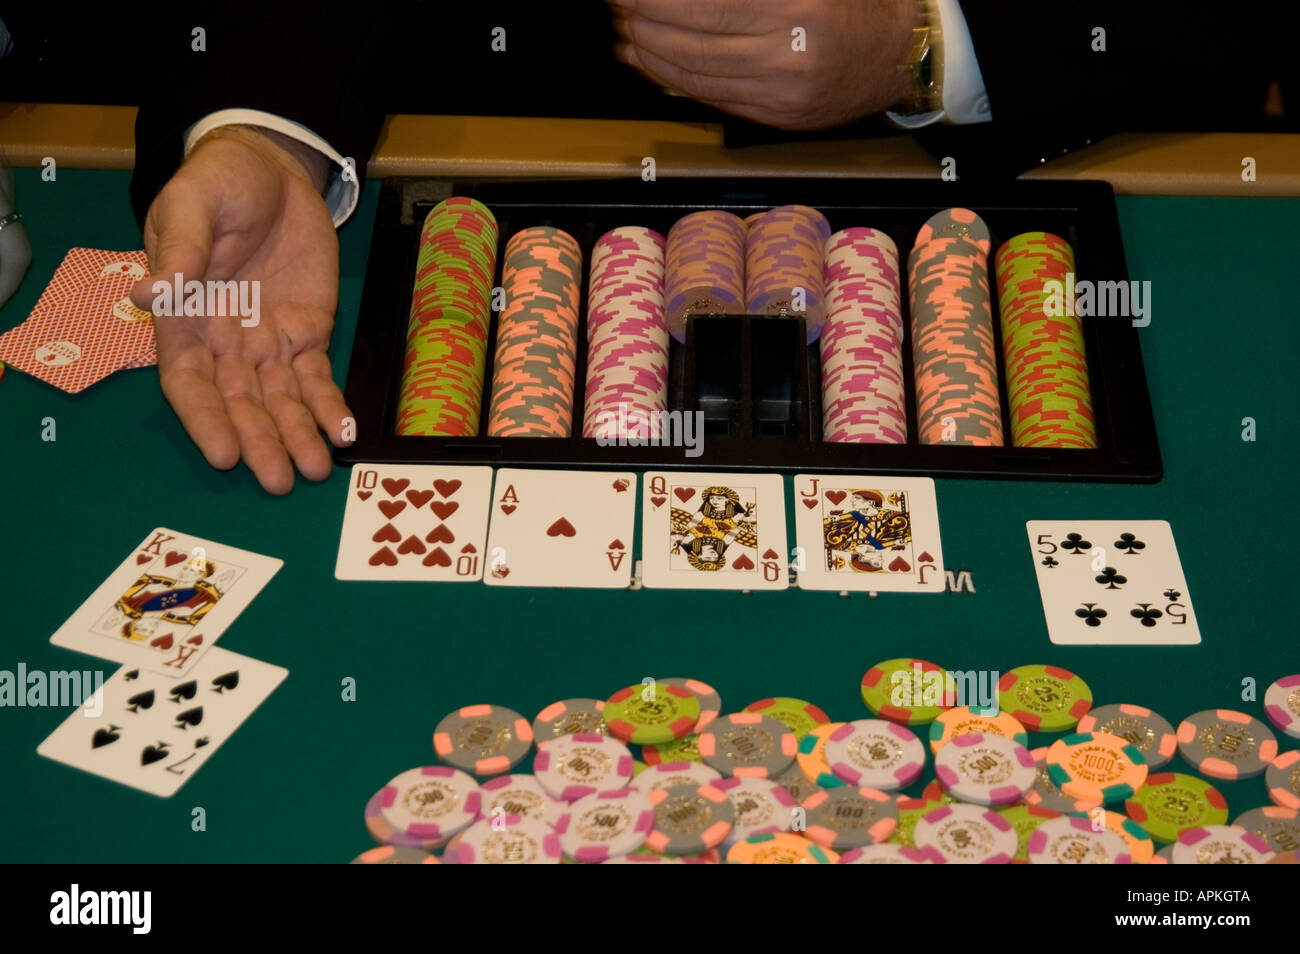 A poker dealer's hand with cards and chips In Las Vegas Nevada Caesars Palace and Casino - Stock Image